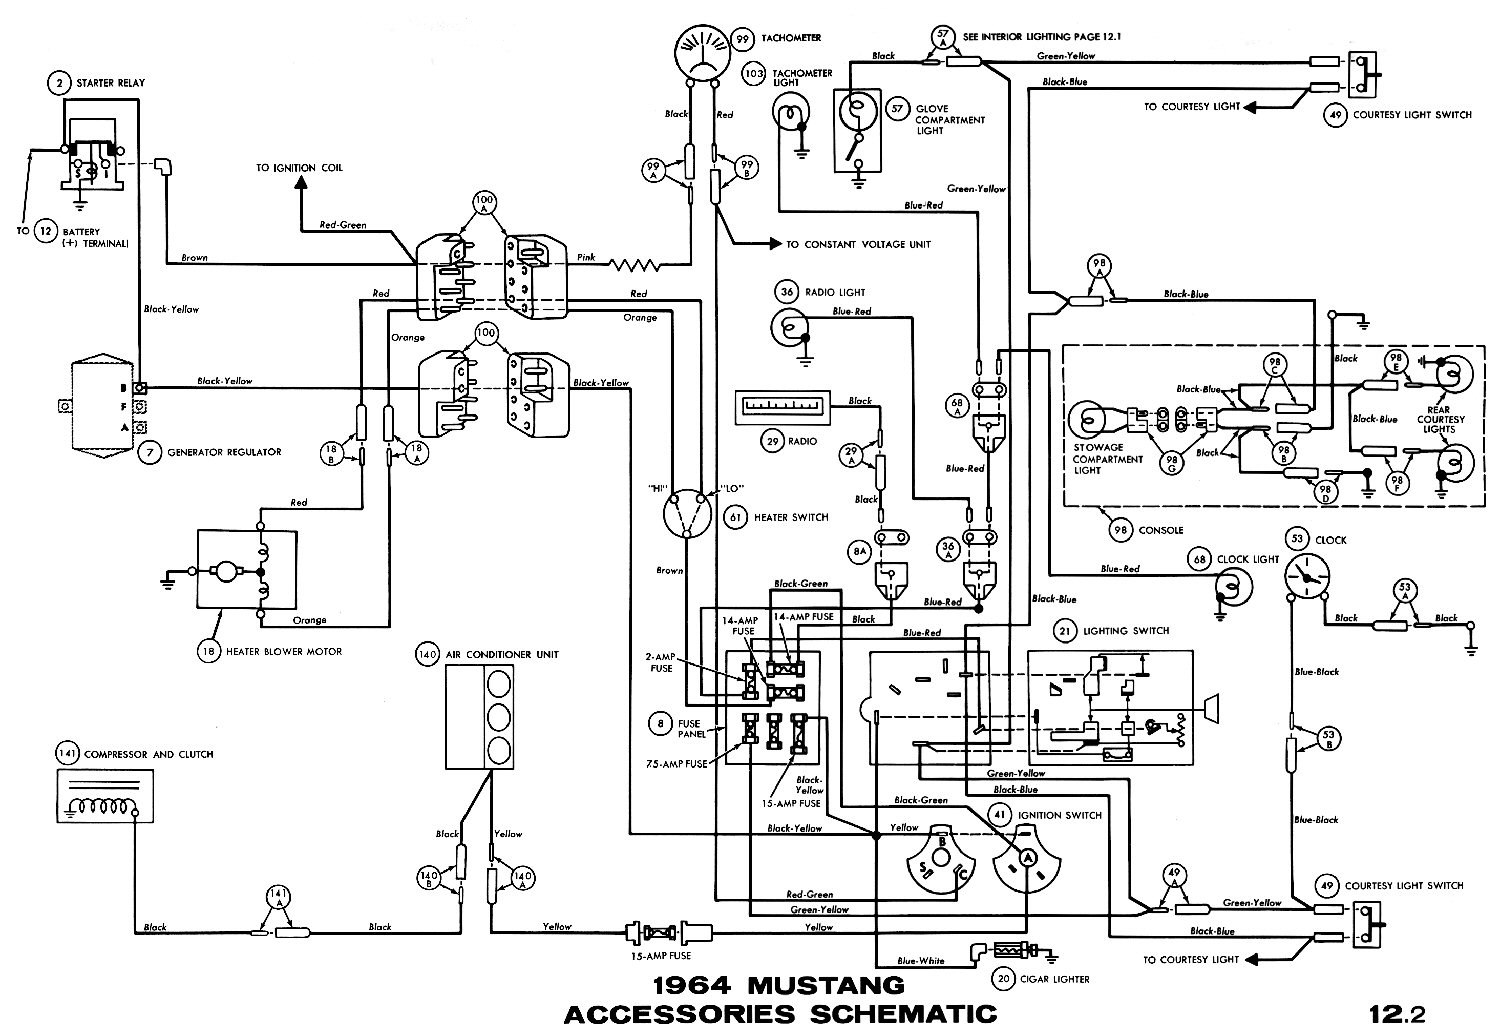 hight resolution of 2003 ford mustang ignition wiring diagram wiring diagram third level rh 1 3 11 jacobwinterstein com mazda millenia parts 1991 mazda miata engine diagram